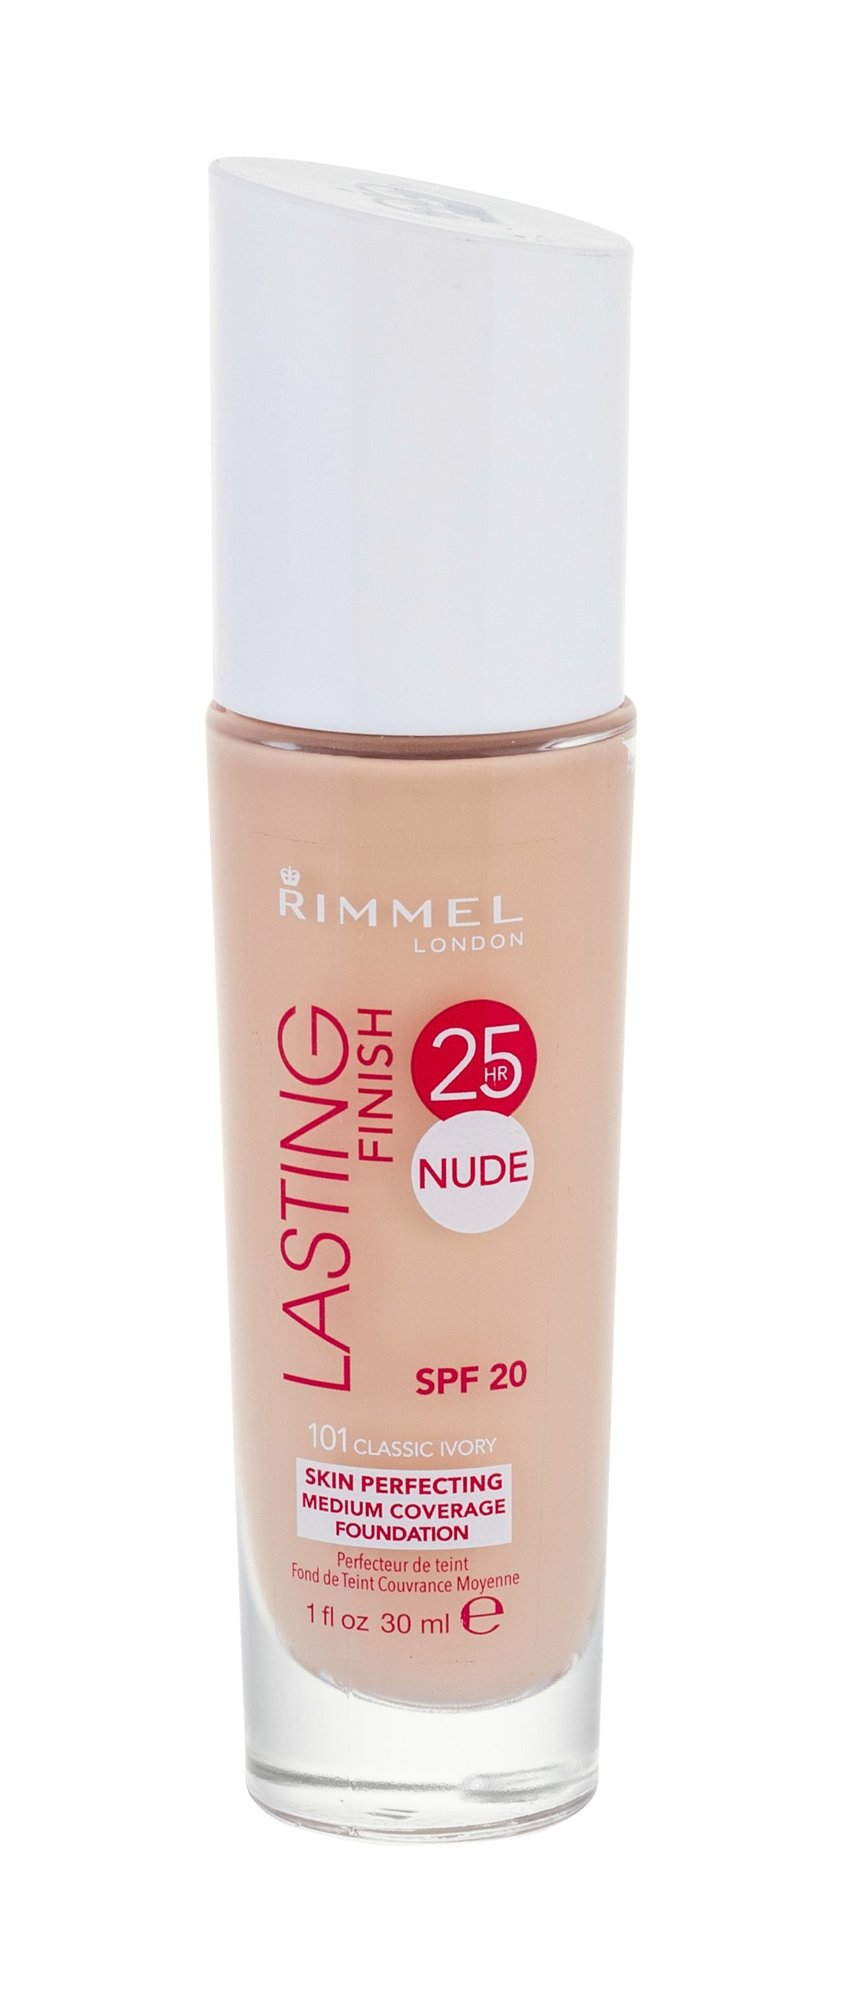 Rimmel London Lasting Finish Cosmetic 30ml 101 Classic Ivory